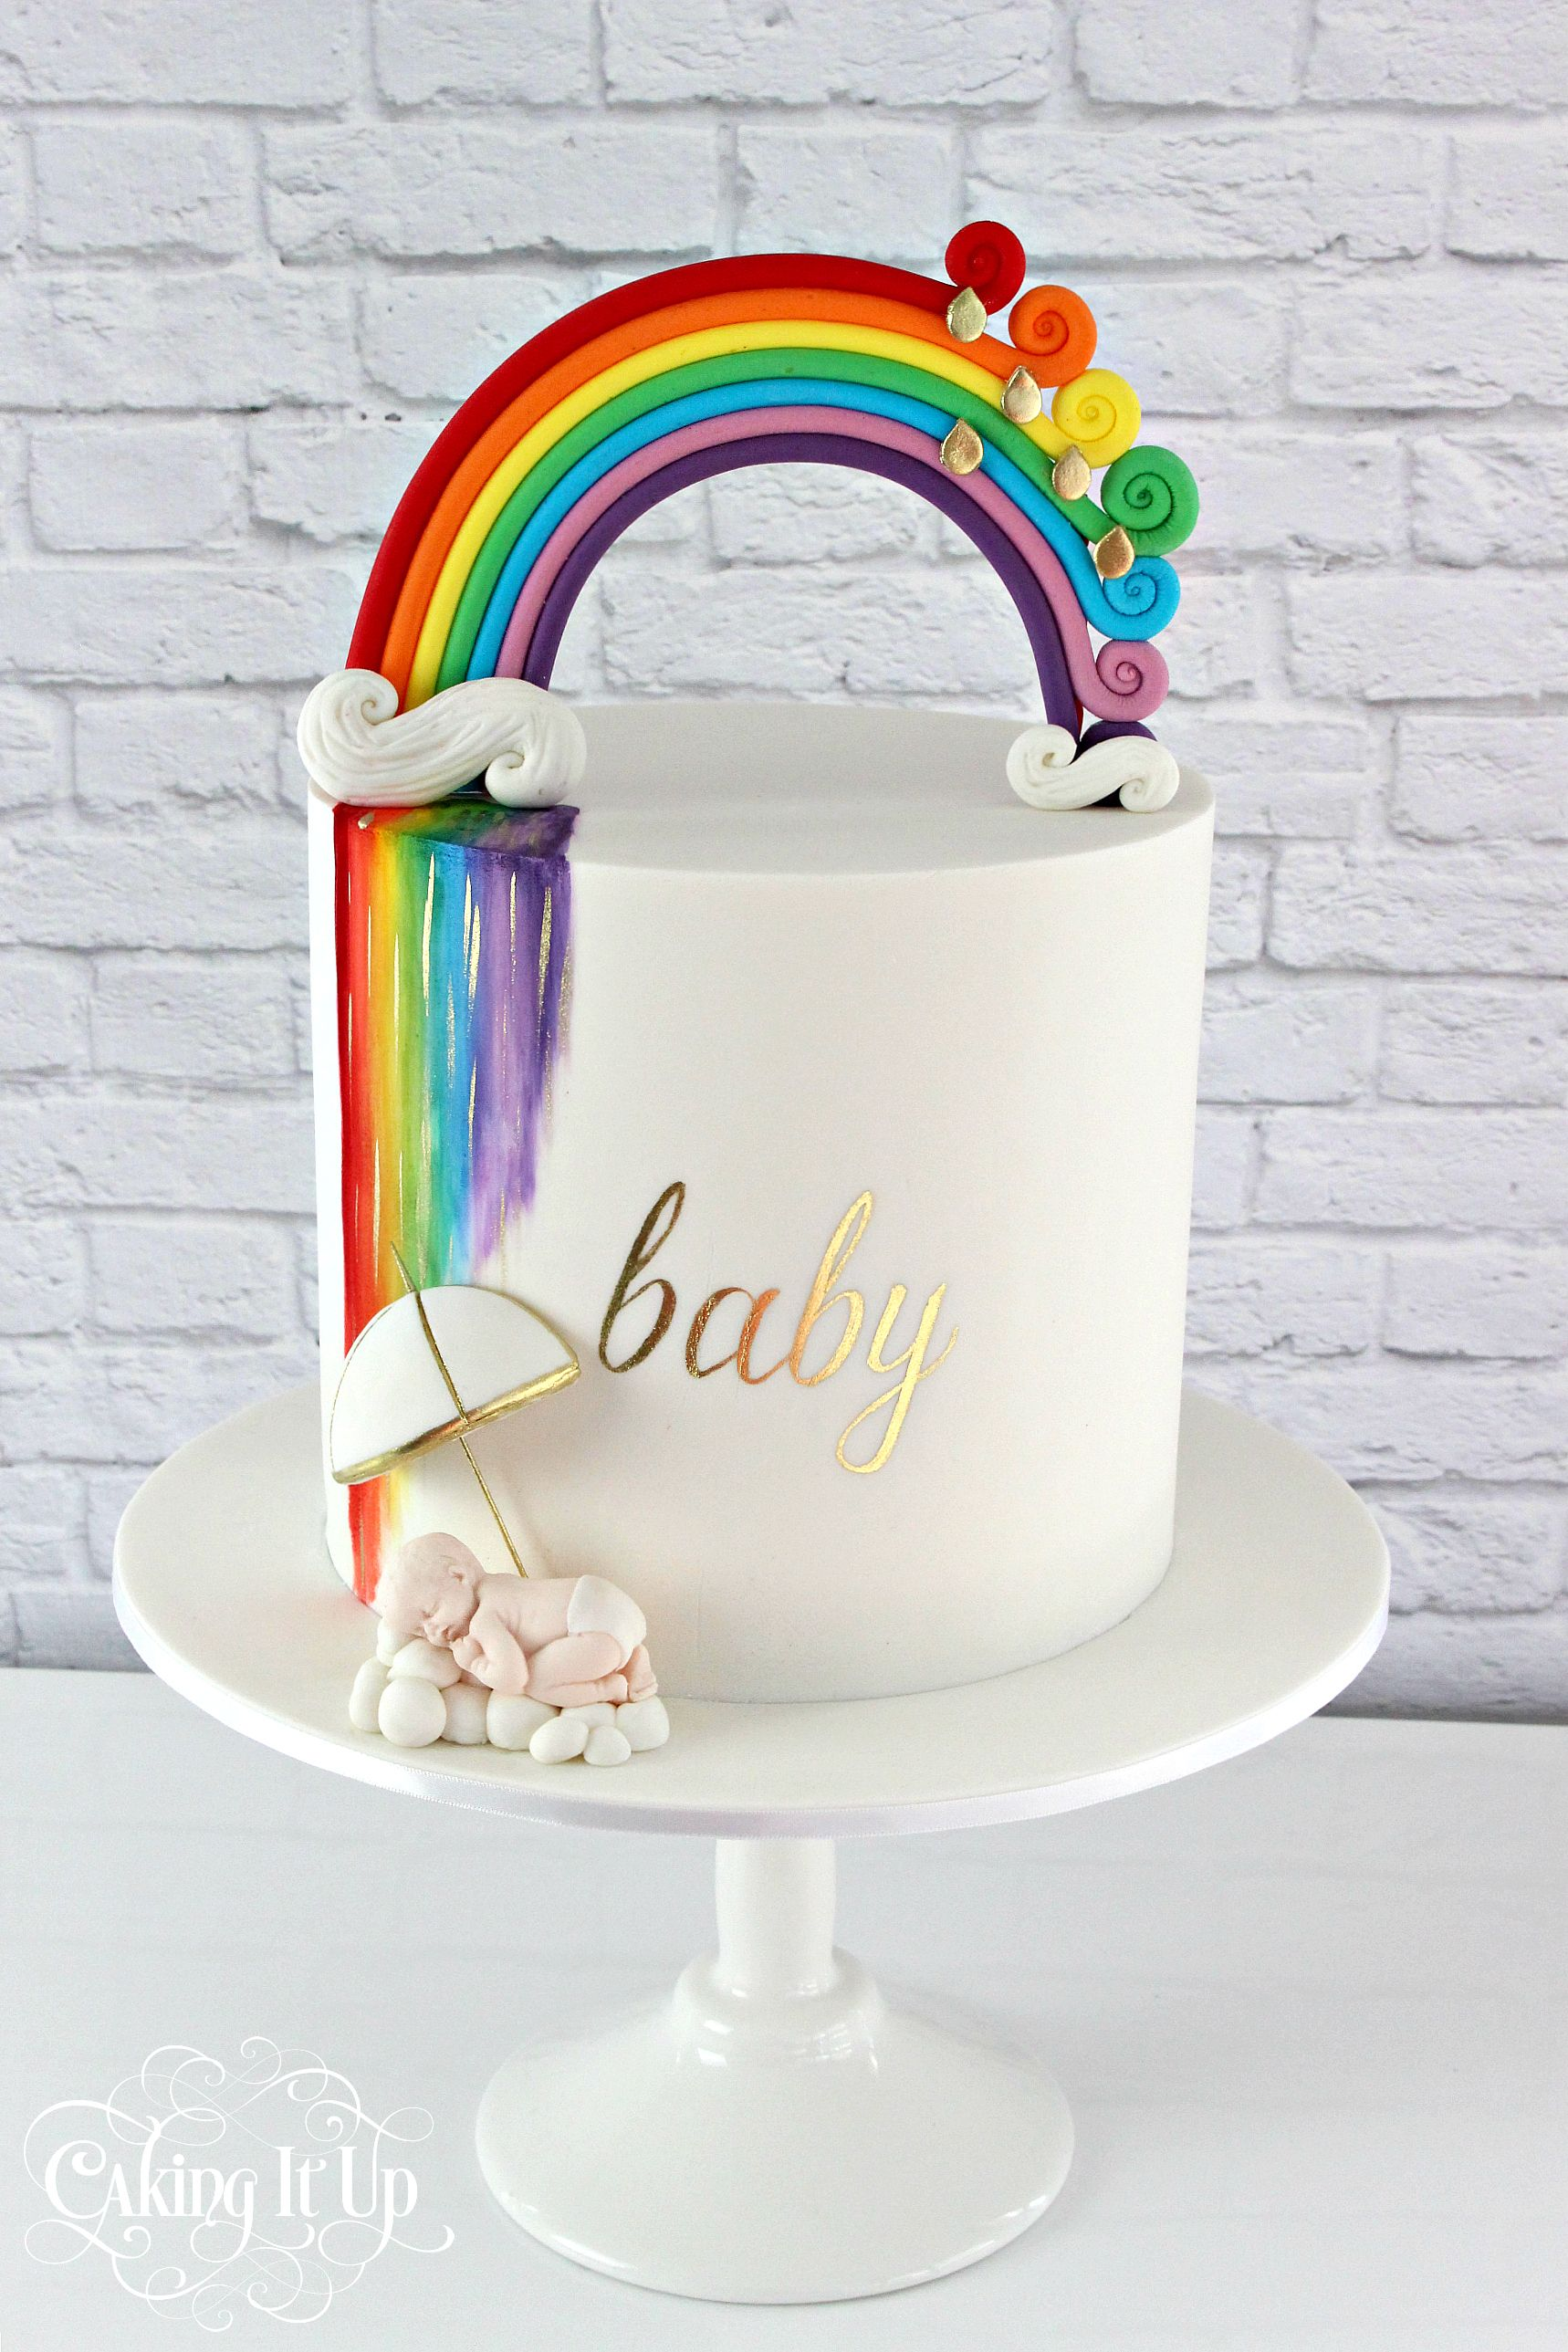 A Vibrant And Rainbow Themed Baby Shower Cake Features A Fondant